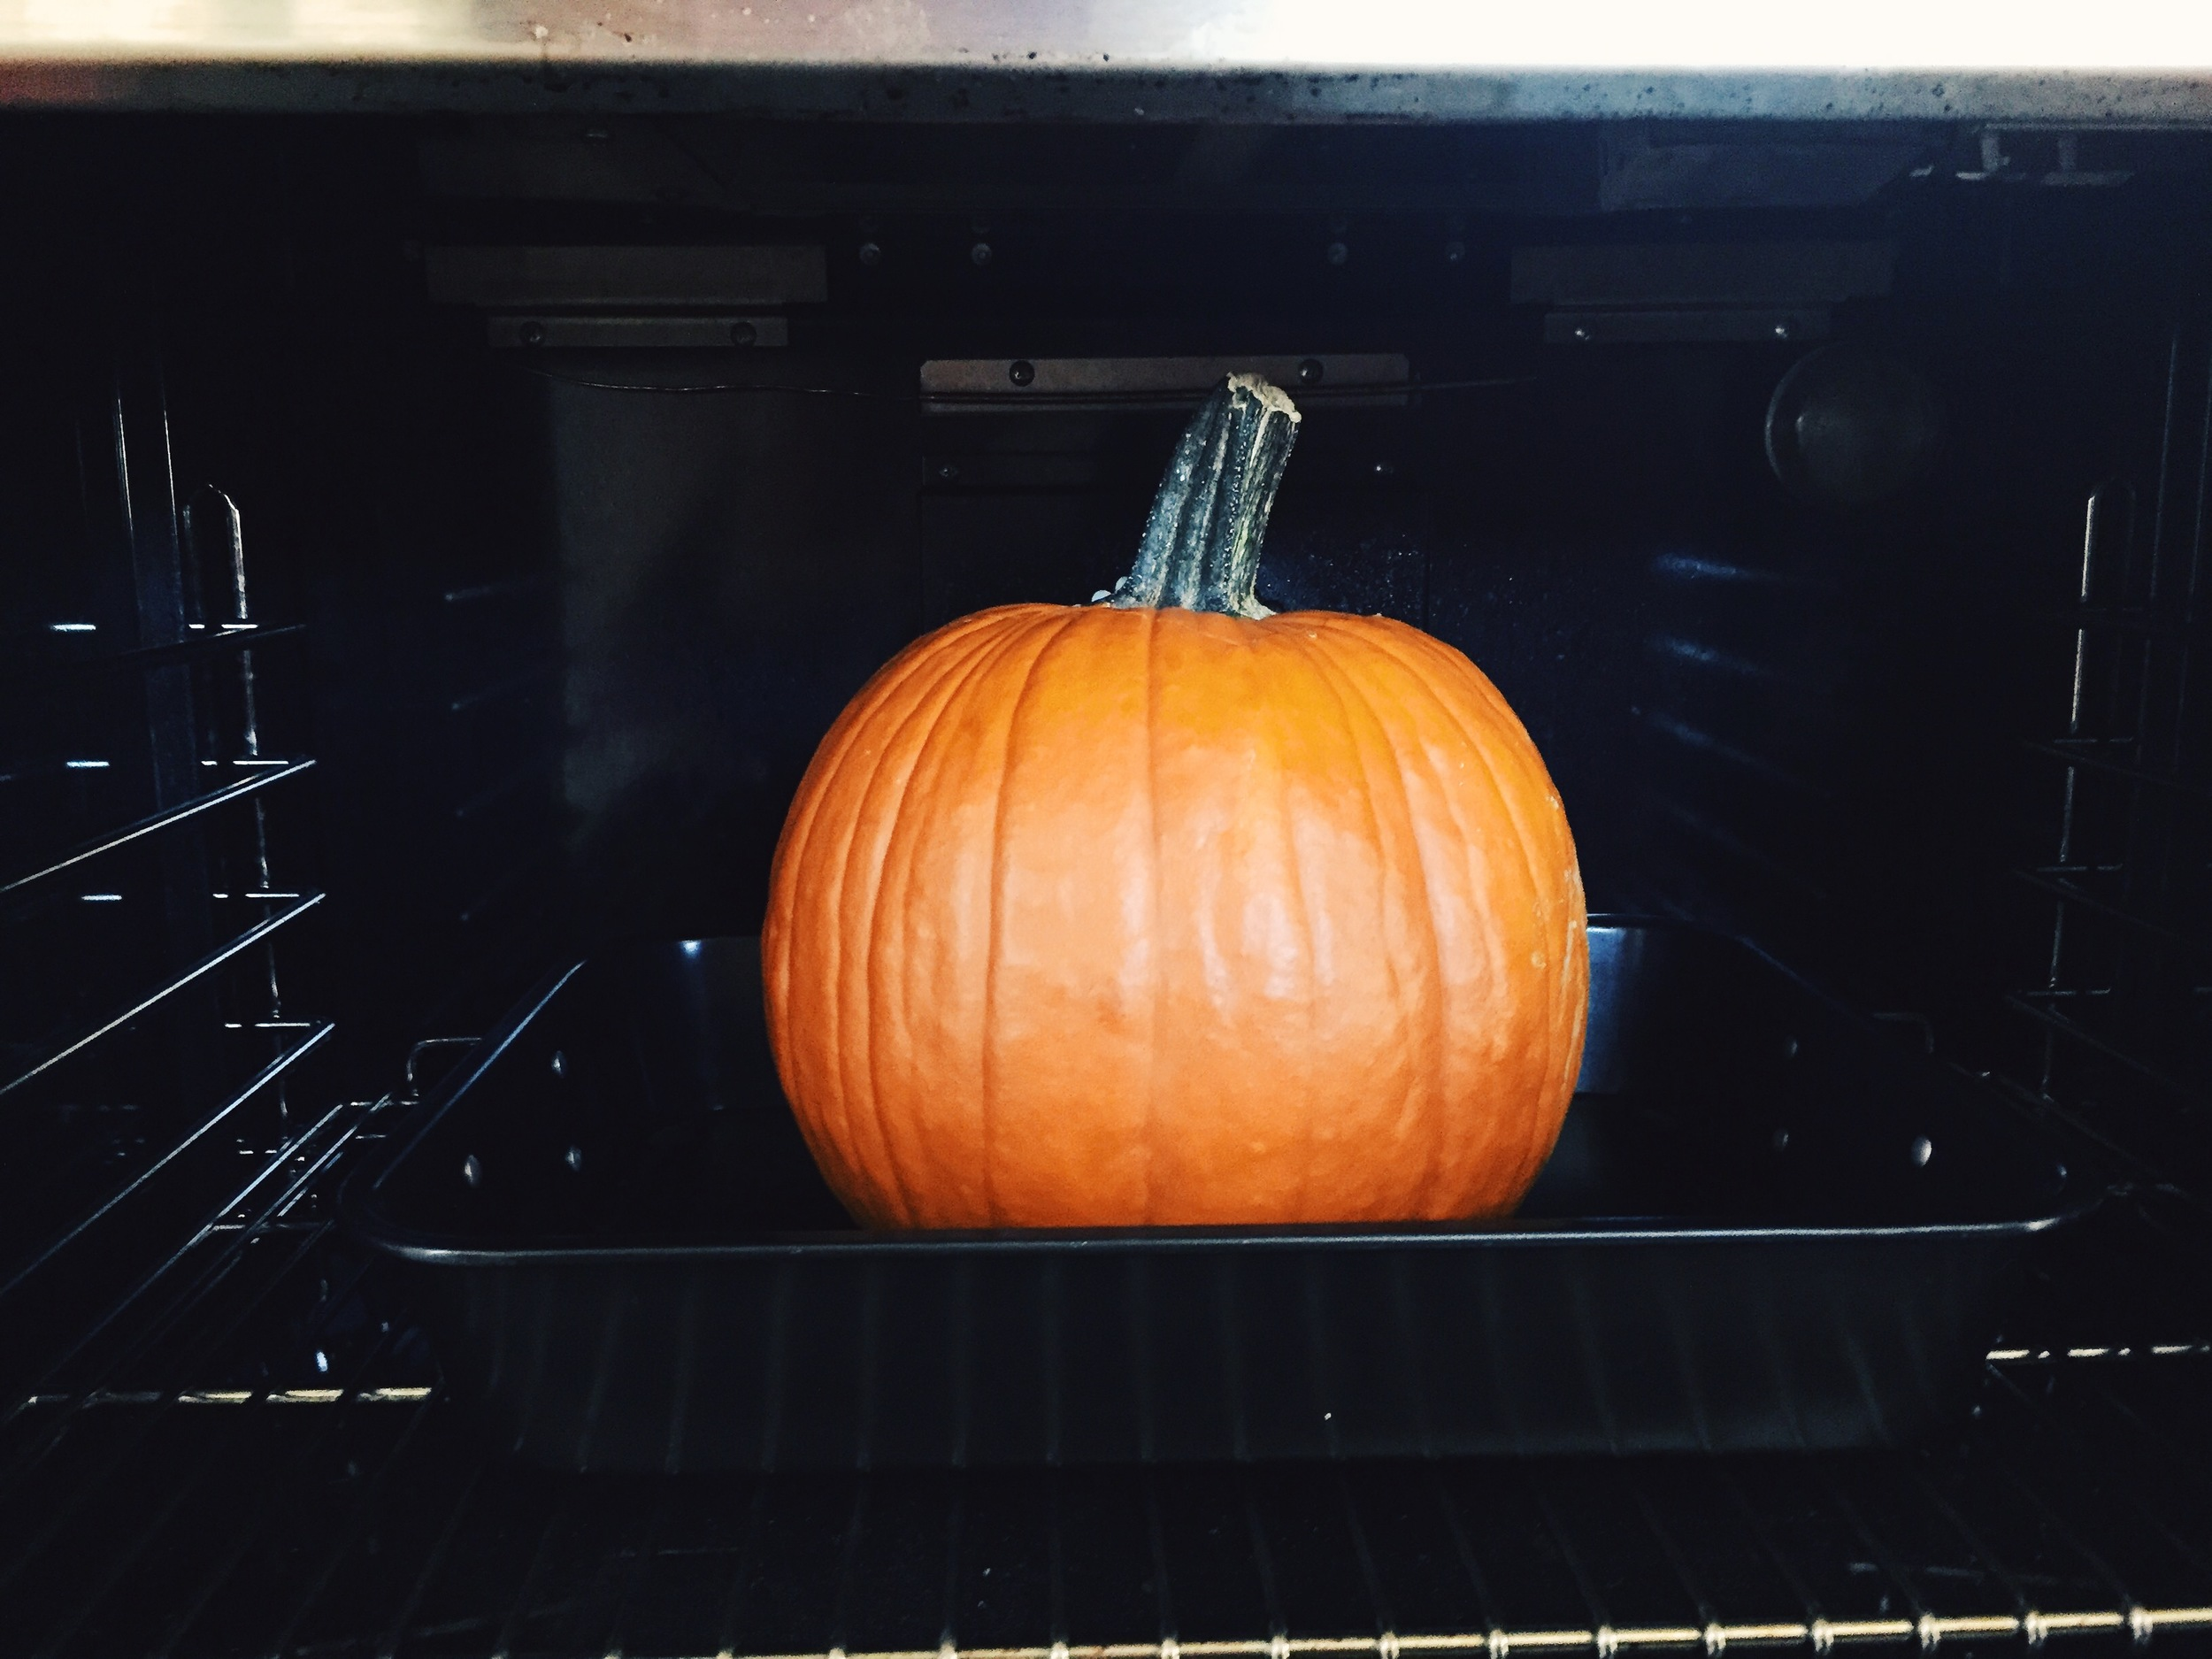 Cook at 350 degree for approximately 2 hrs or until meat of pumpkin is tender.